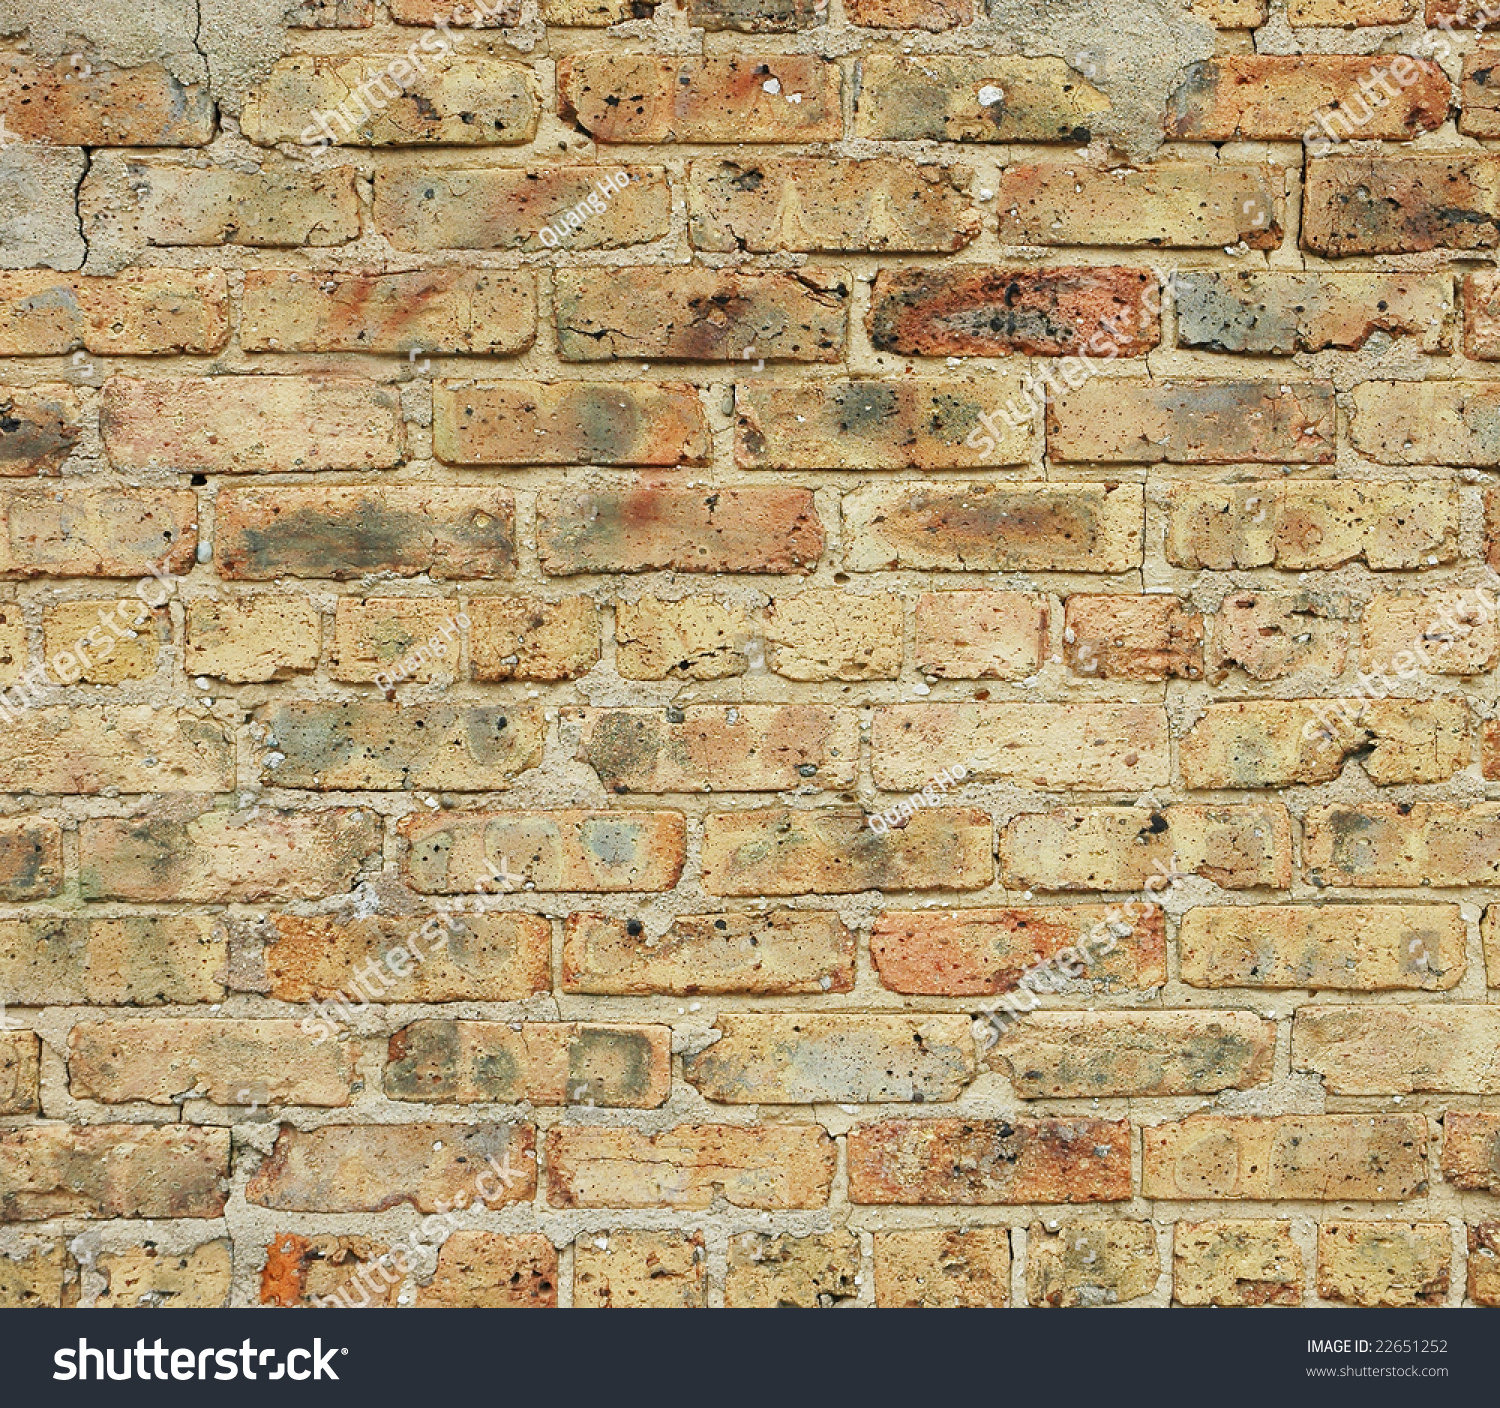 Wall Decor The Brick : Decor the oldest brick wall stock photo